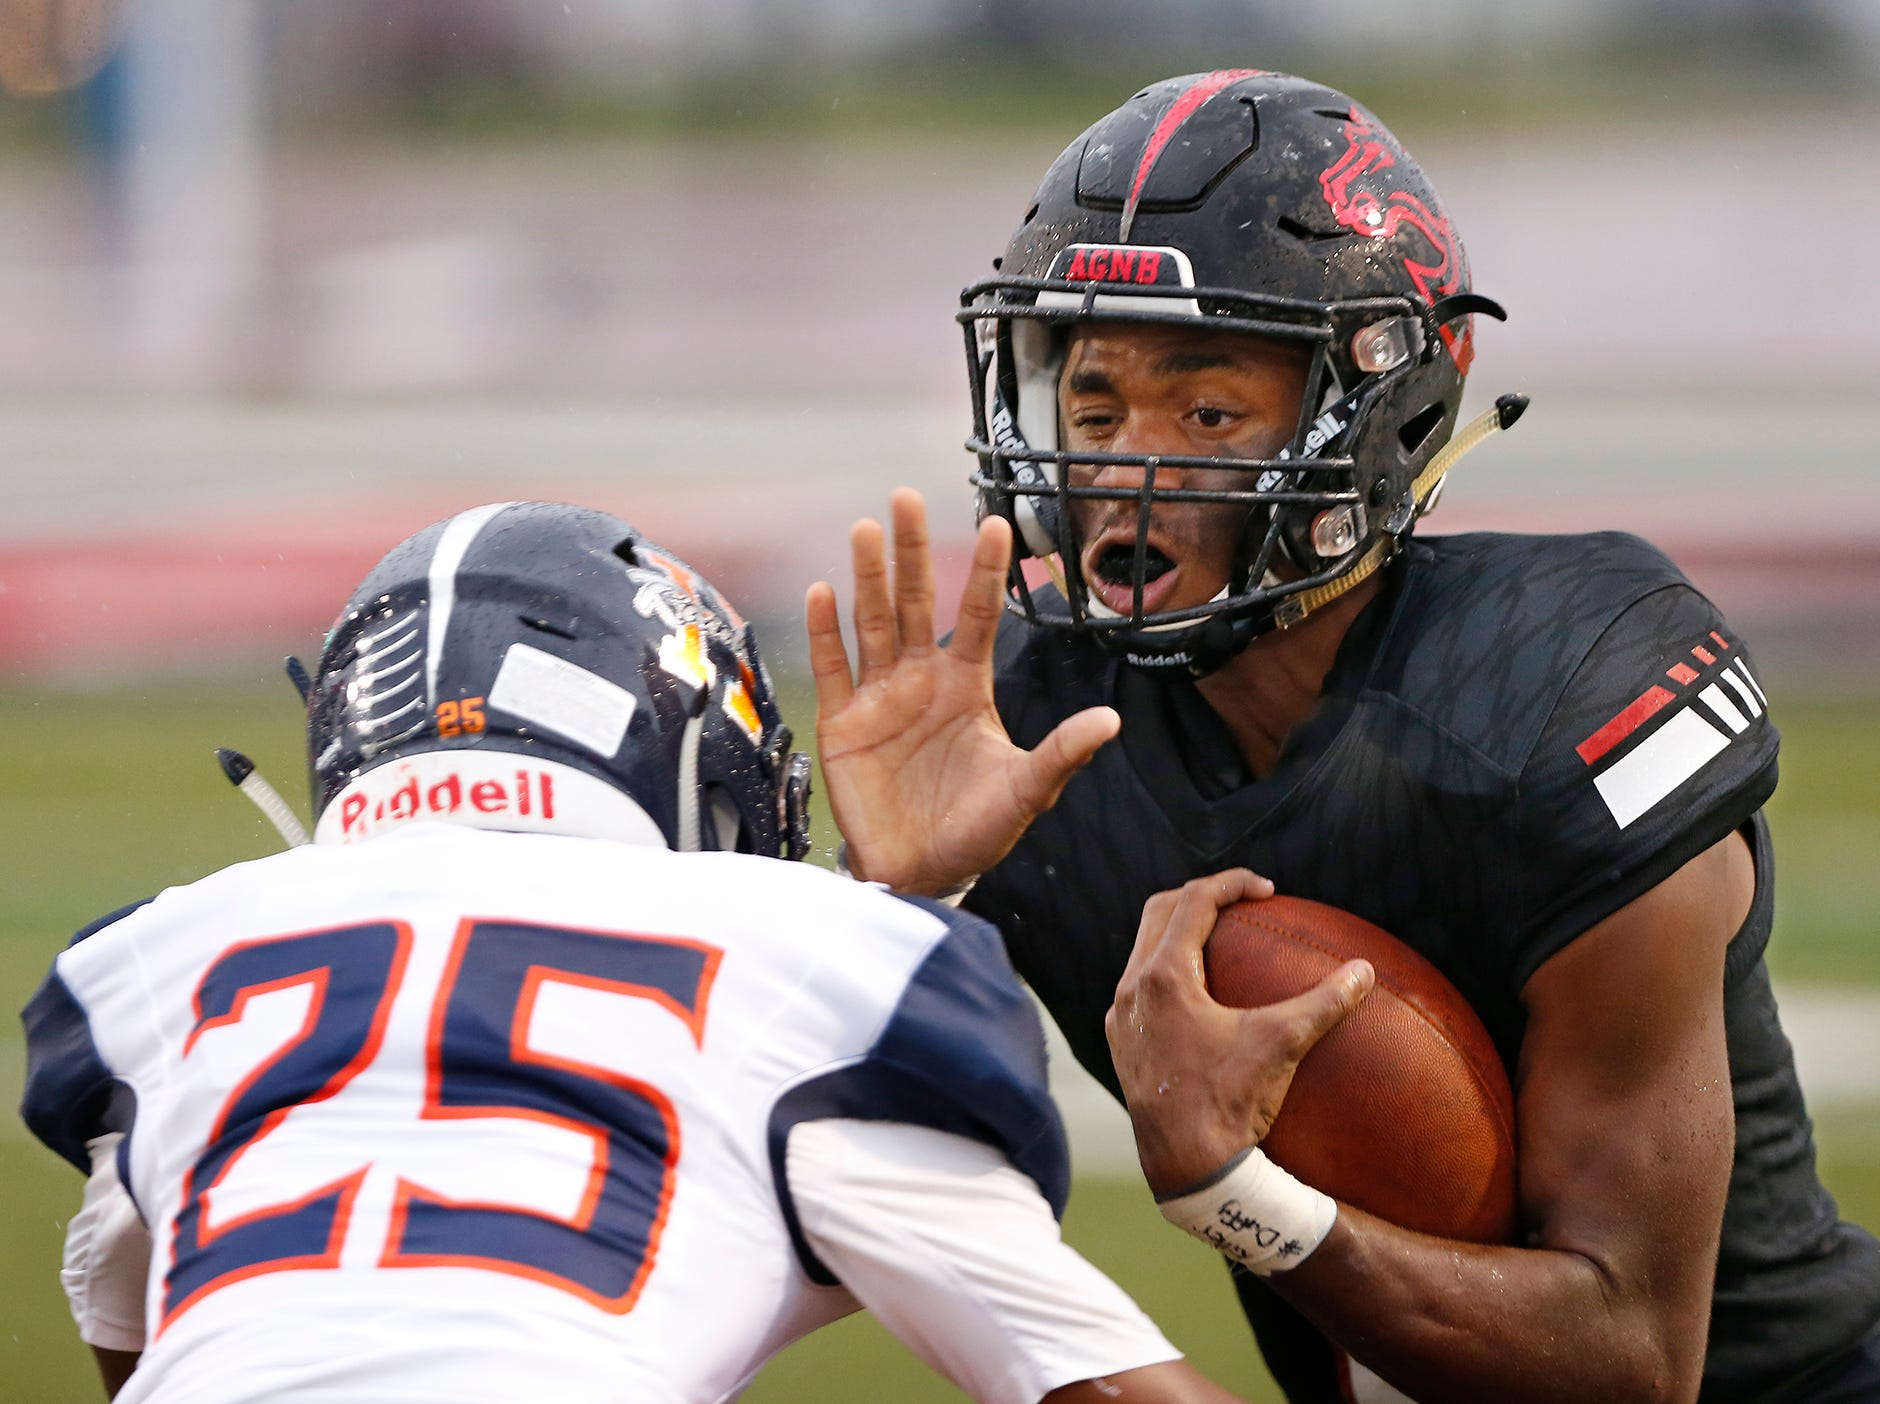 Lafayette Jeff wide receiver Derrick Matthews braces for the hit coming from Marcel Atisso of Harrison Friday, September 7, 2018, at Scheumann Stadium. Jeff defeated Harrison 31-14.